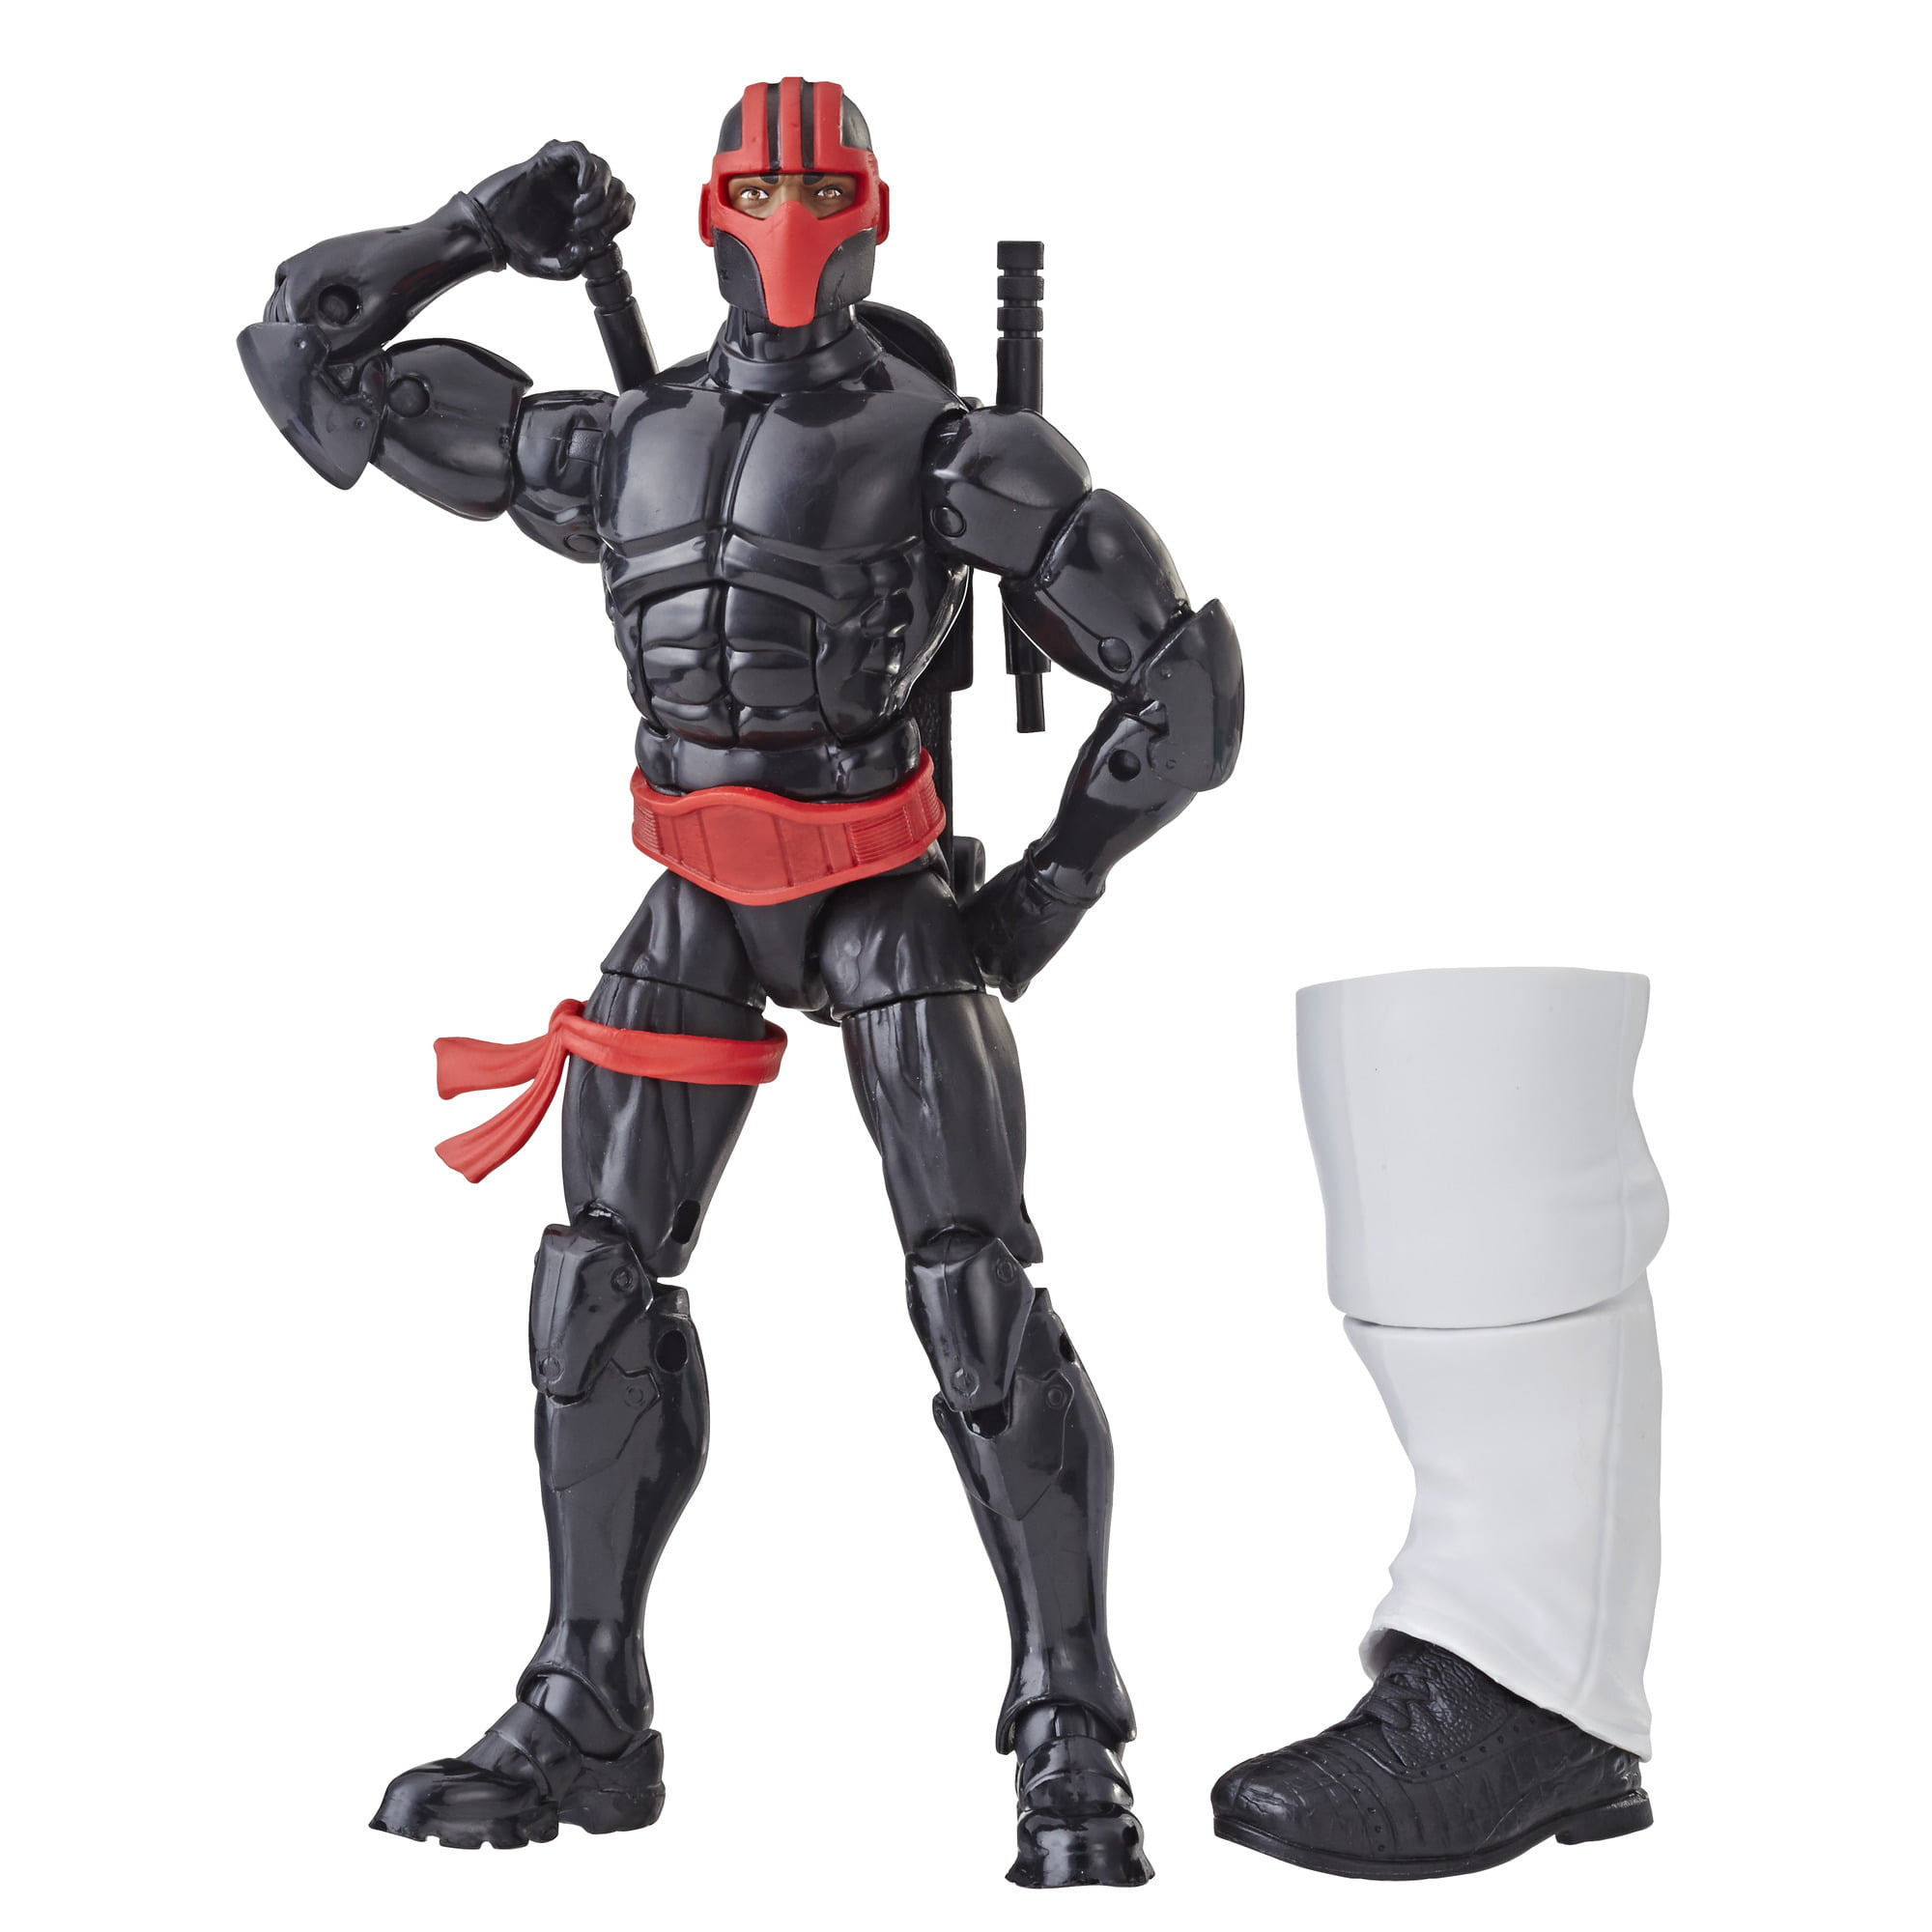 Spider-Man Legends Series 6-inch Marvel's Night Thrasher